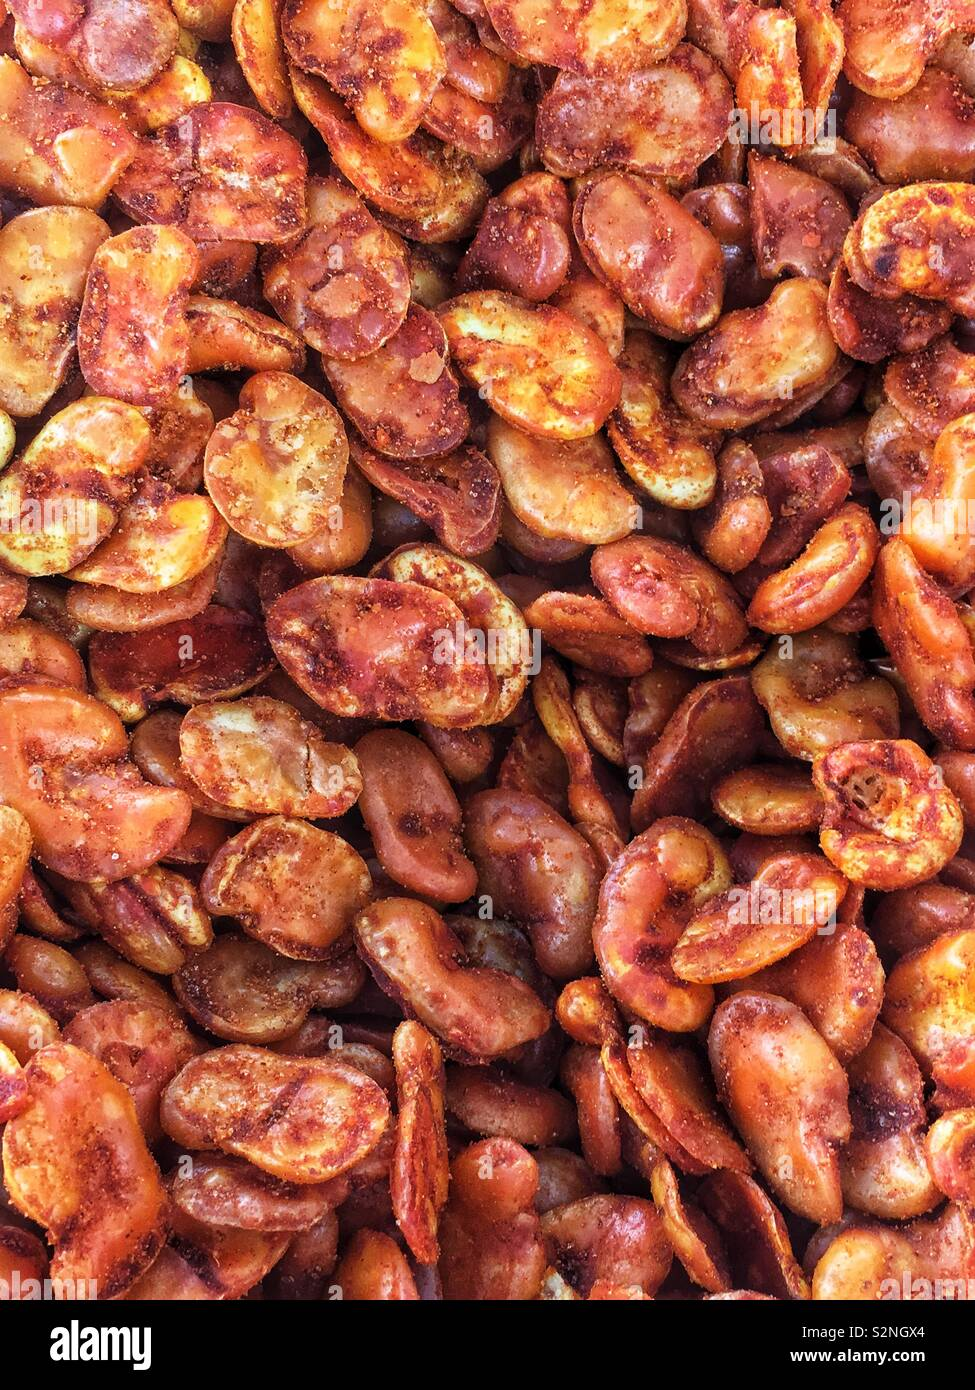 Full frame of dried fava beans dusted in red chili powder as a delicious natural and popular snack. - Stock Image